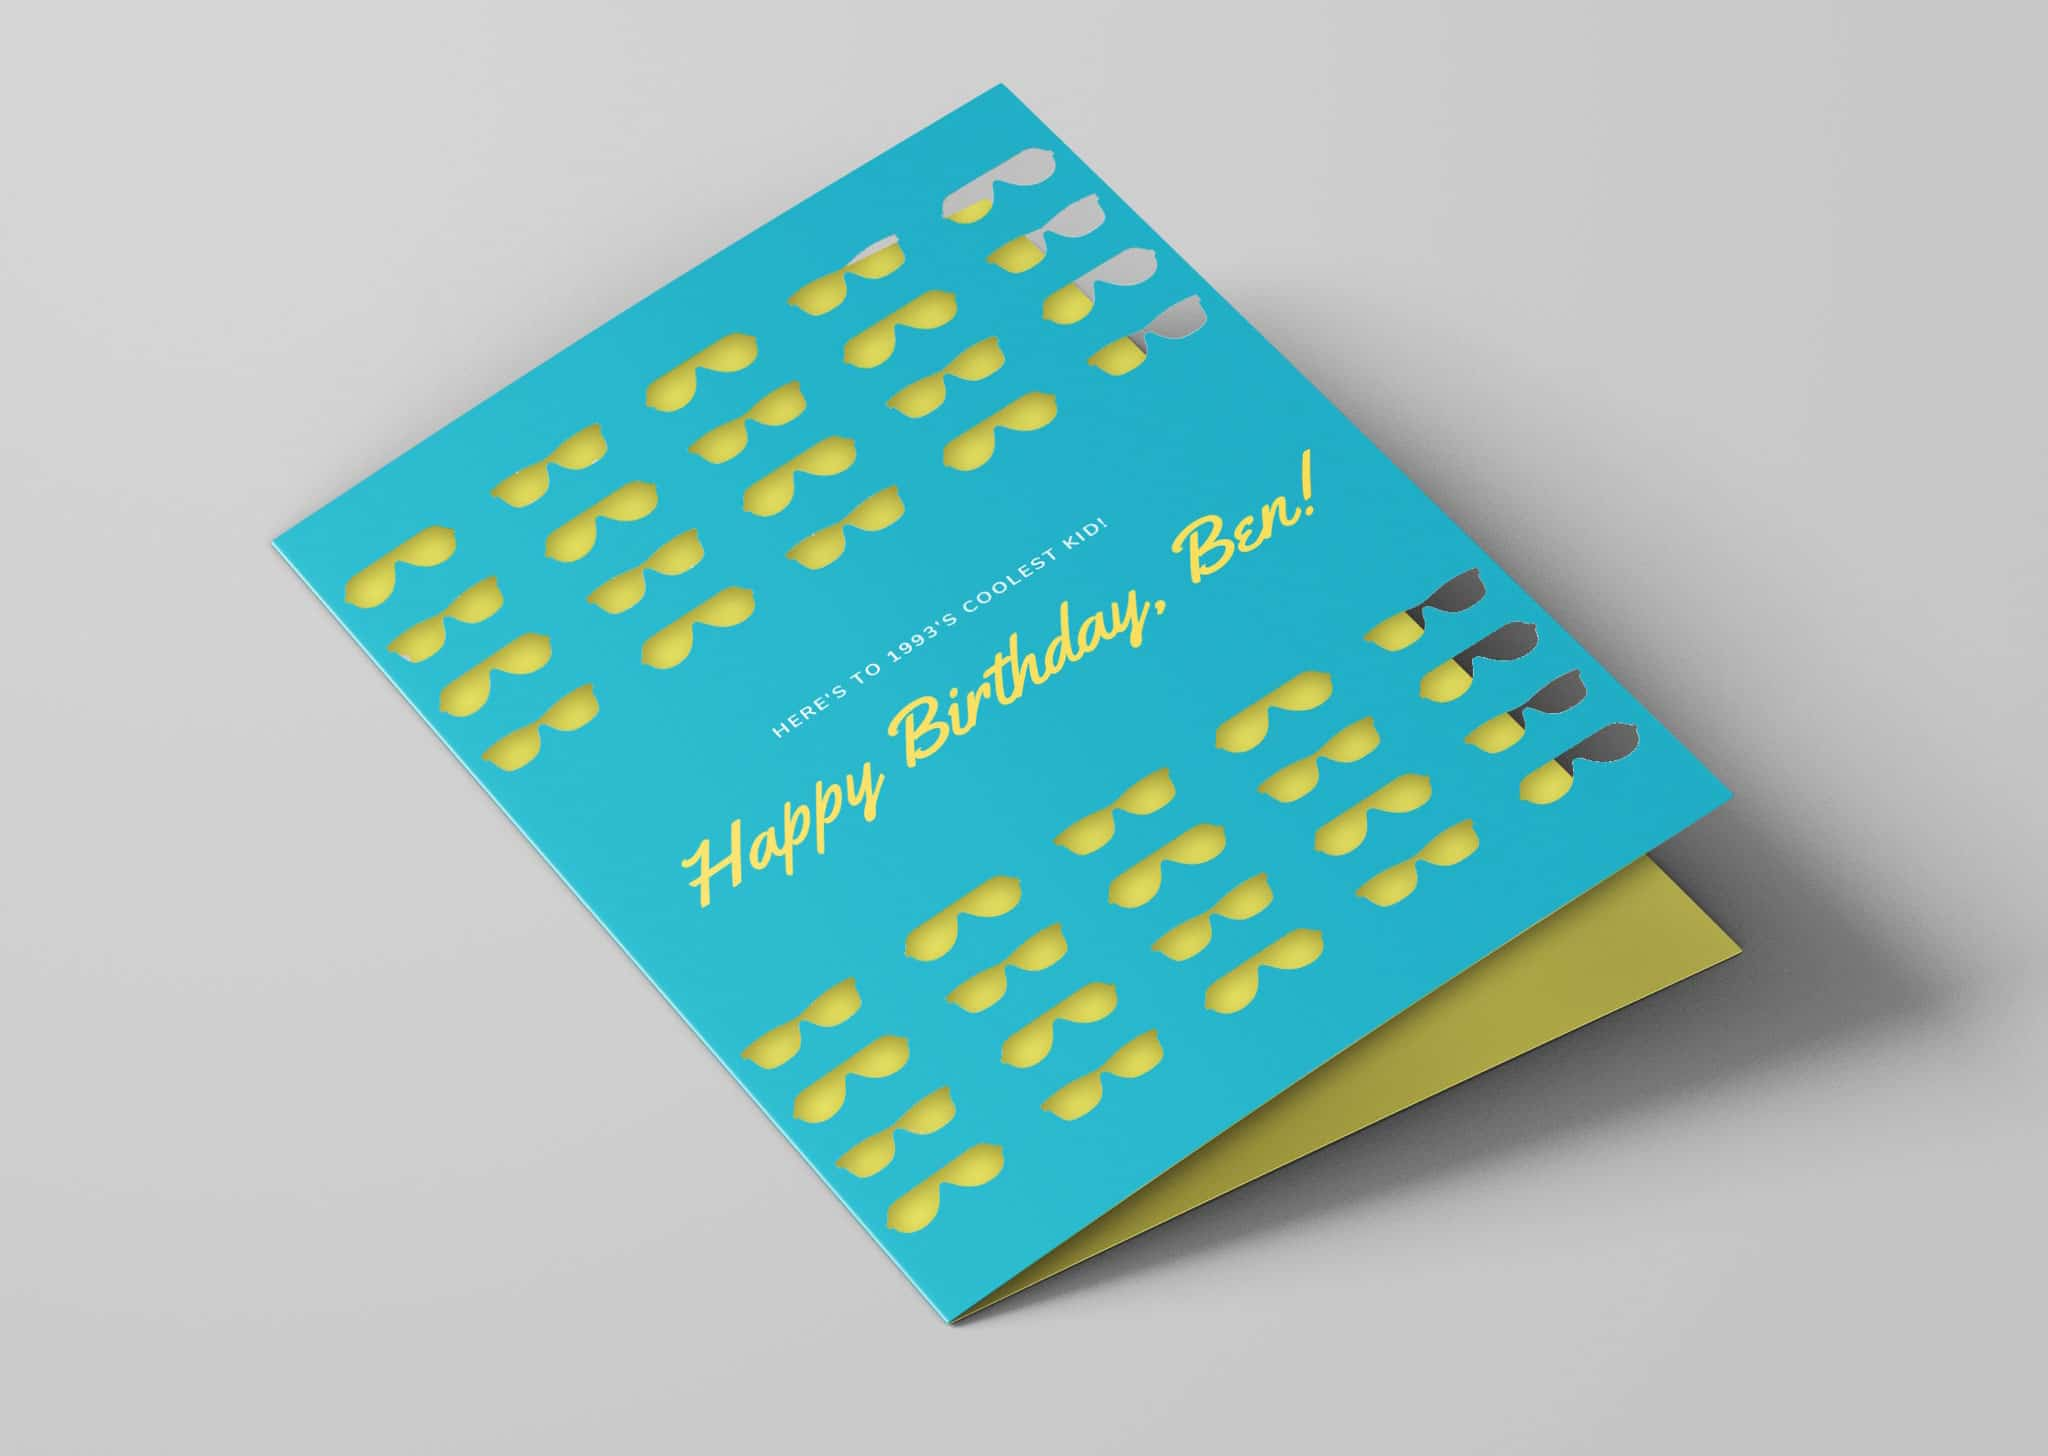 A Z Design And Print Services Laser Cut Greetings Cards